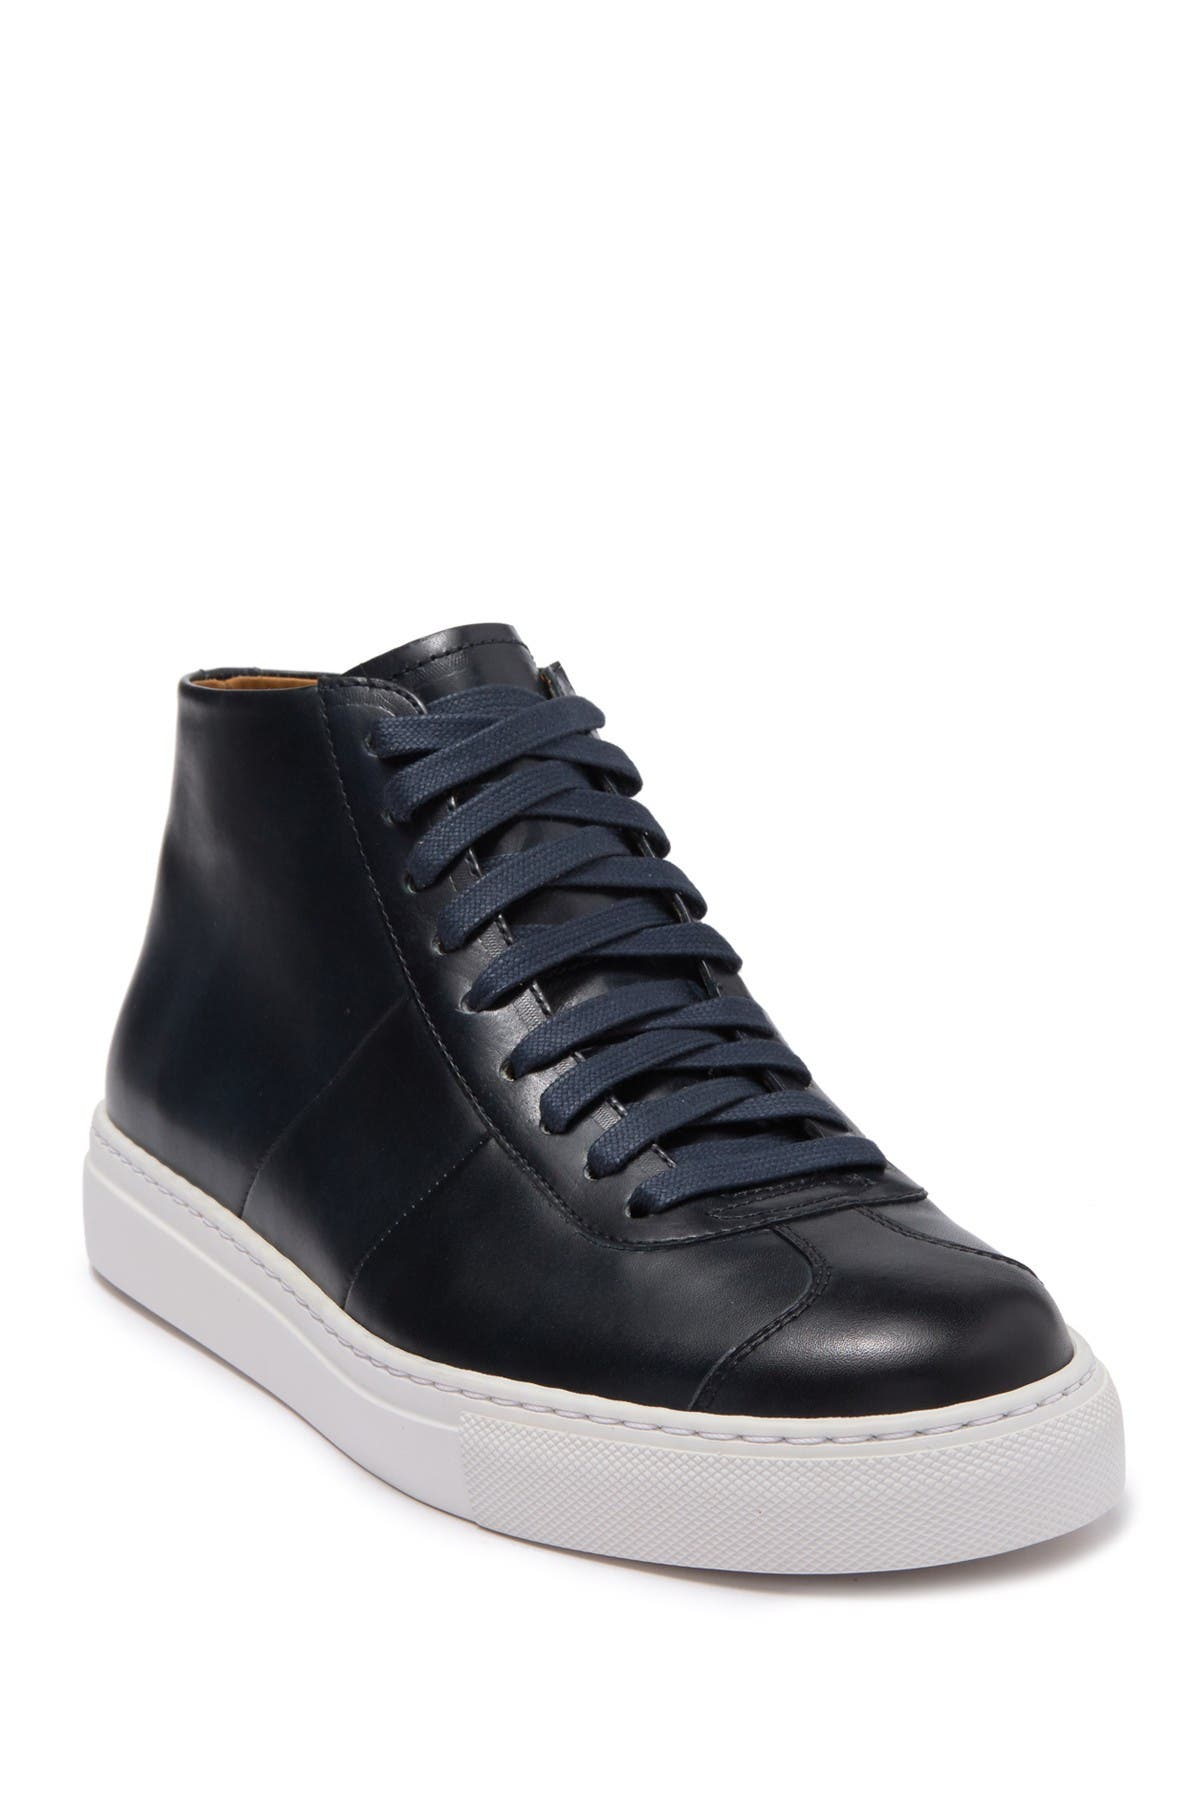 Image of Magnanni Elias Mid Leather Sneaker